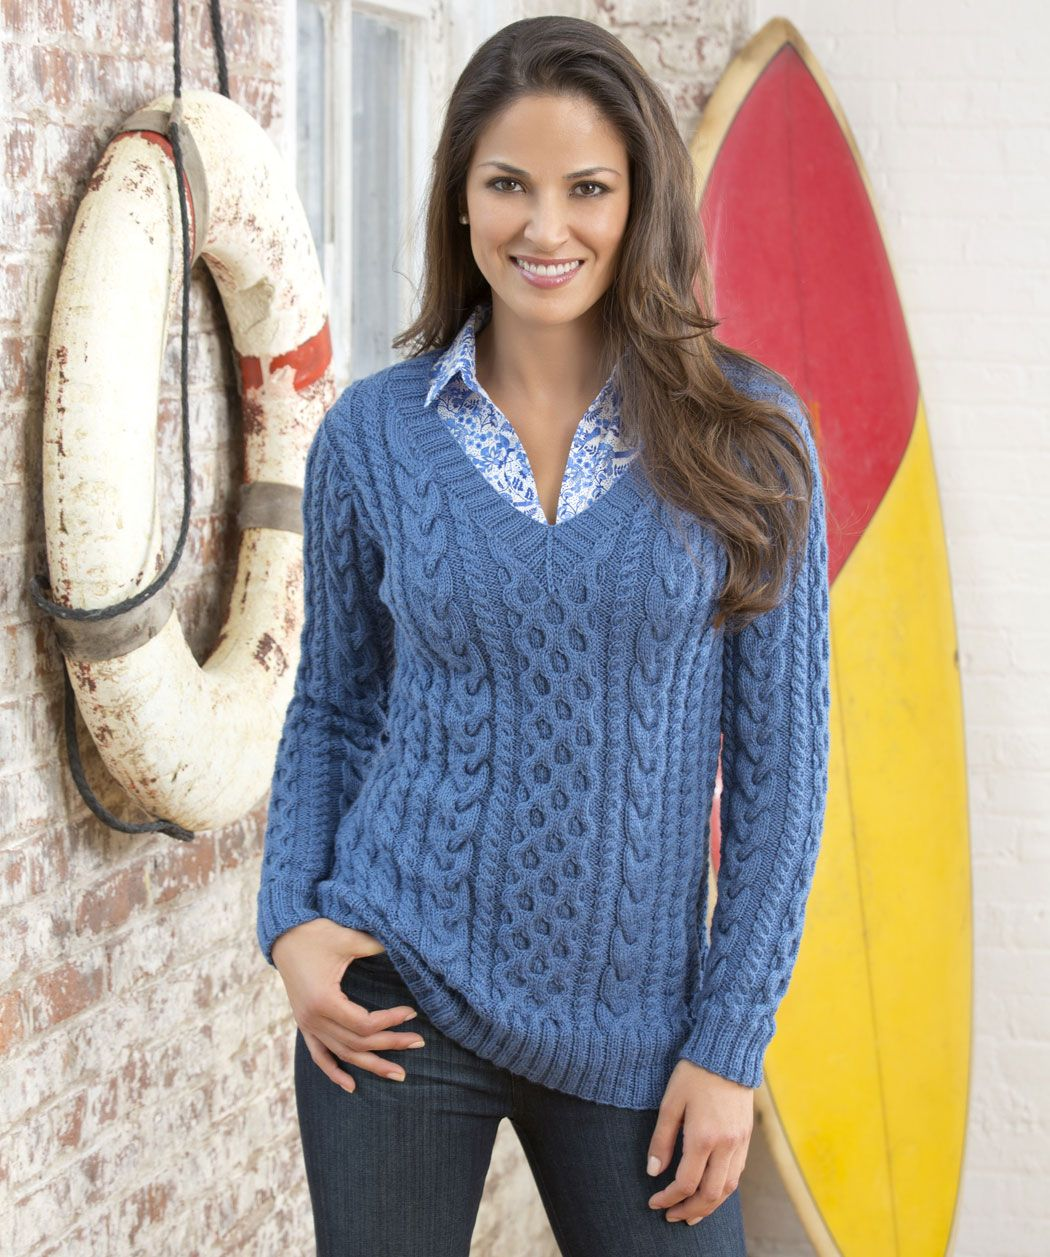 Confident Cables Sweater Free Knitting Pattern #FinaDK #RedHeart ...